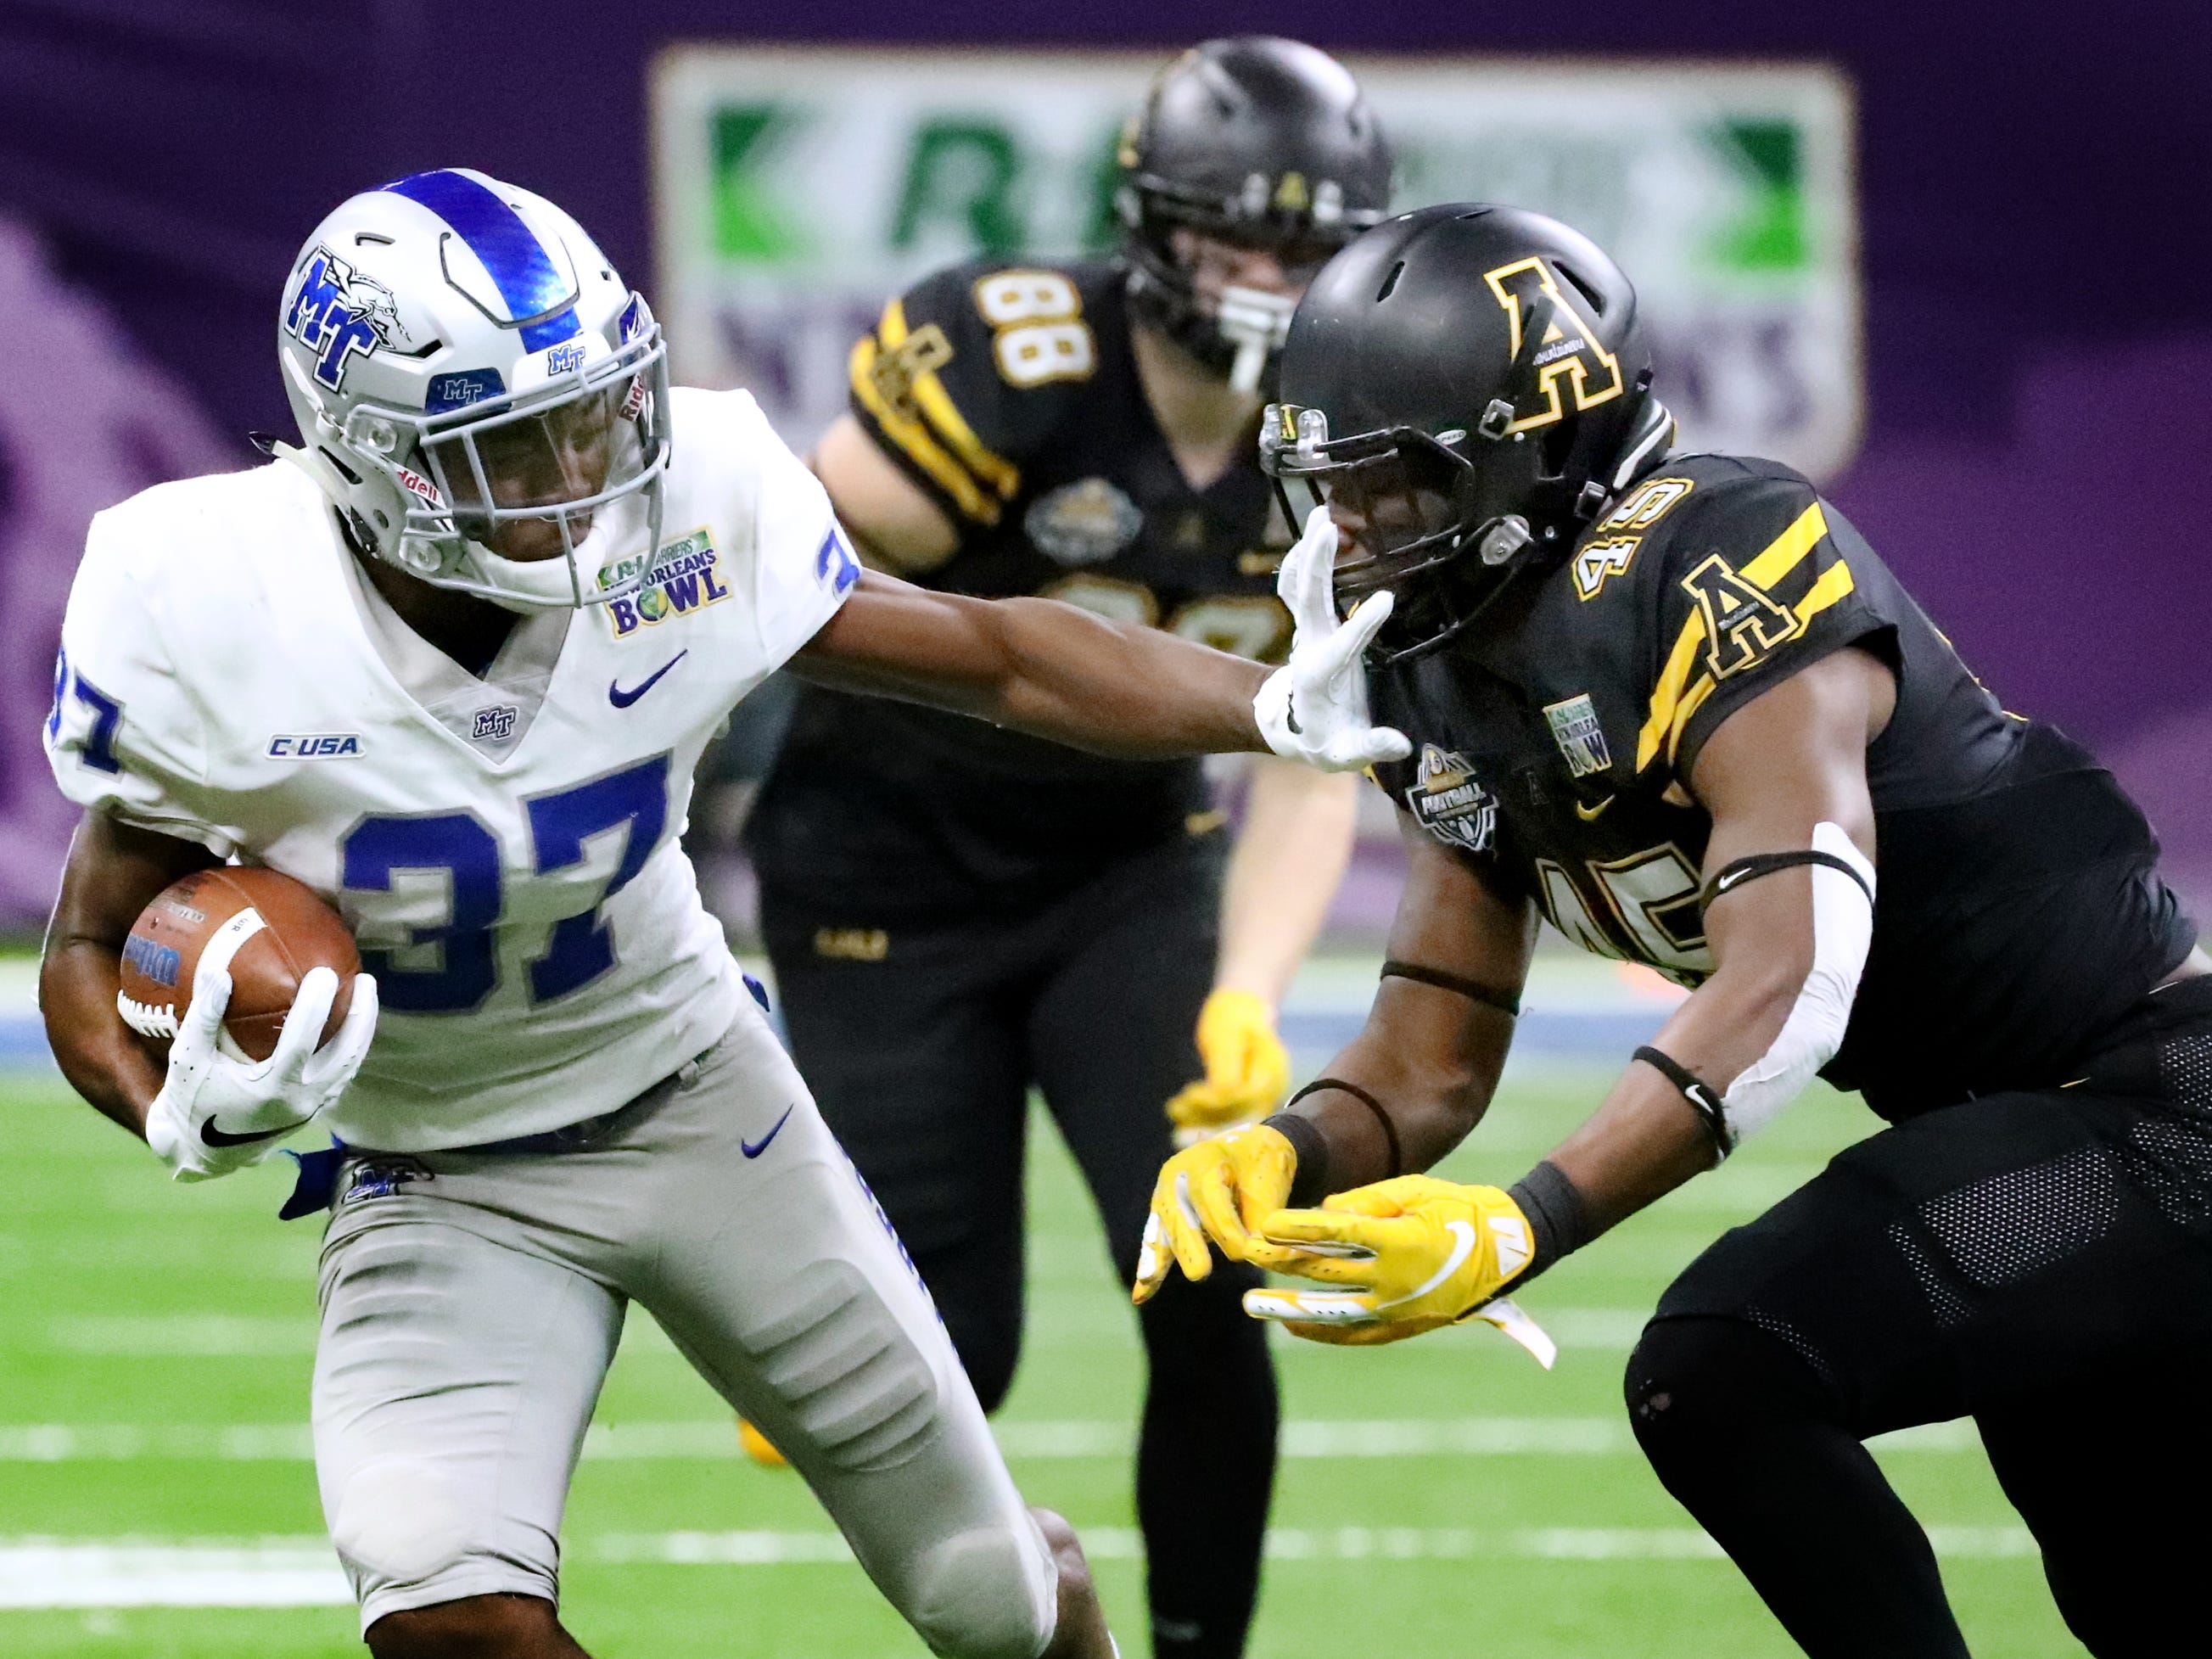 Middle Tennessee Blue Raiders wide receiver Patrick Smith (37) runs the ball as Appalachian State Mountaineers linebacker Trey Cobb (45) moves in for a tackle on Saturday, Dec. 15, 2018, during the New Orleans Bowl.